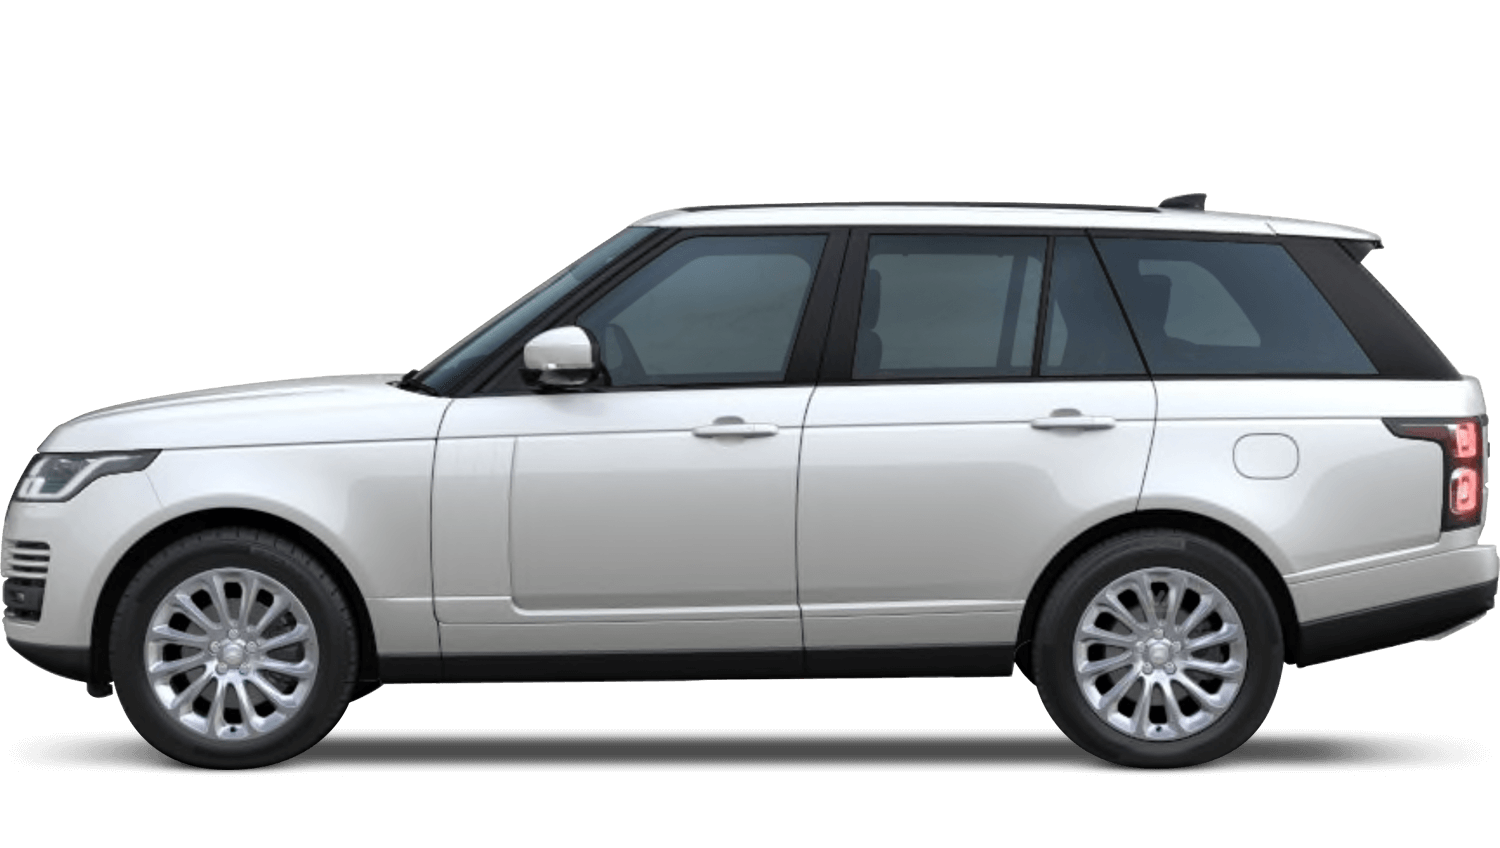 Valloire White Pearl (Pearlescent) Land Rover Range Rover Phev